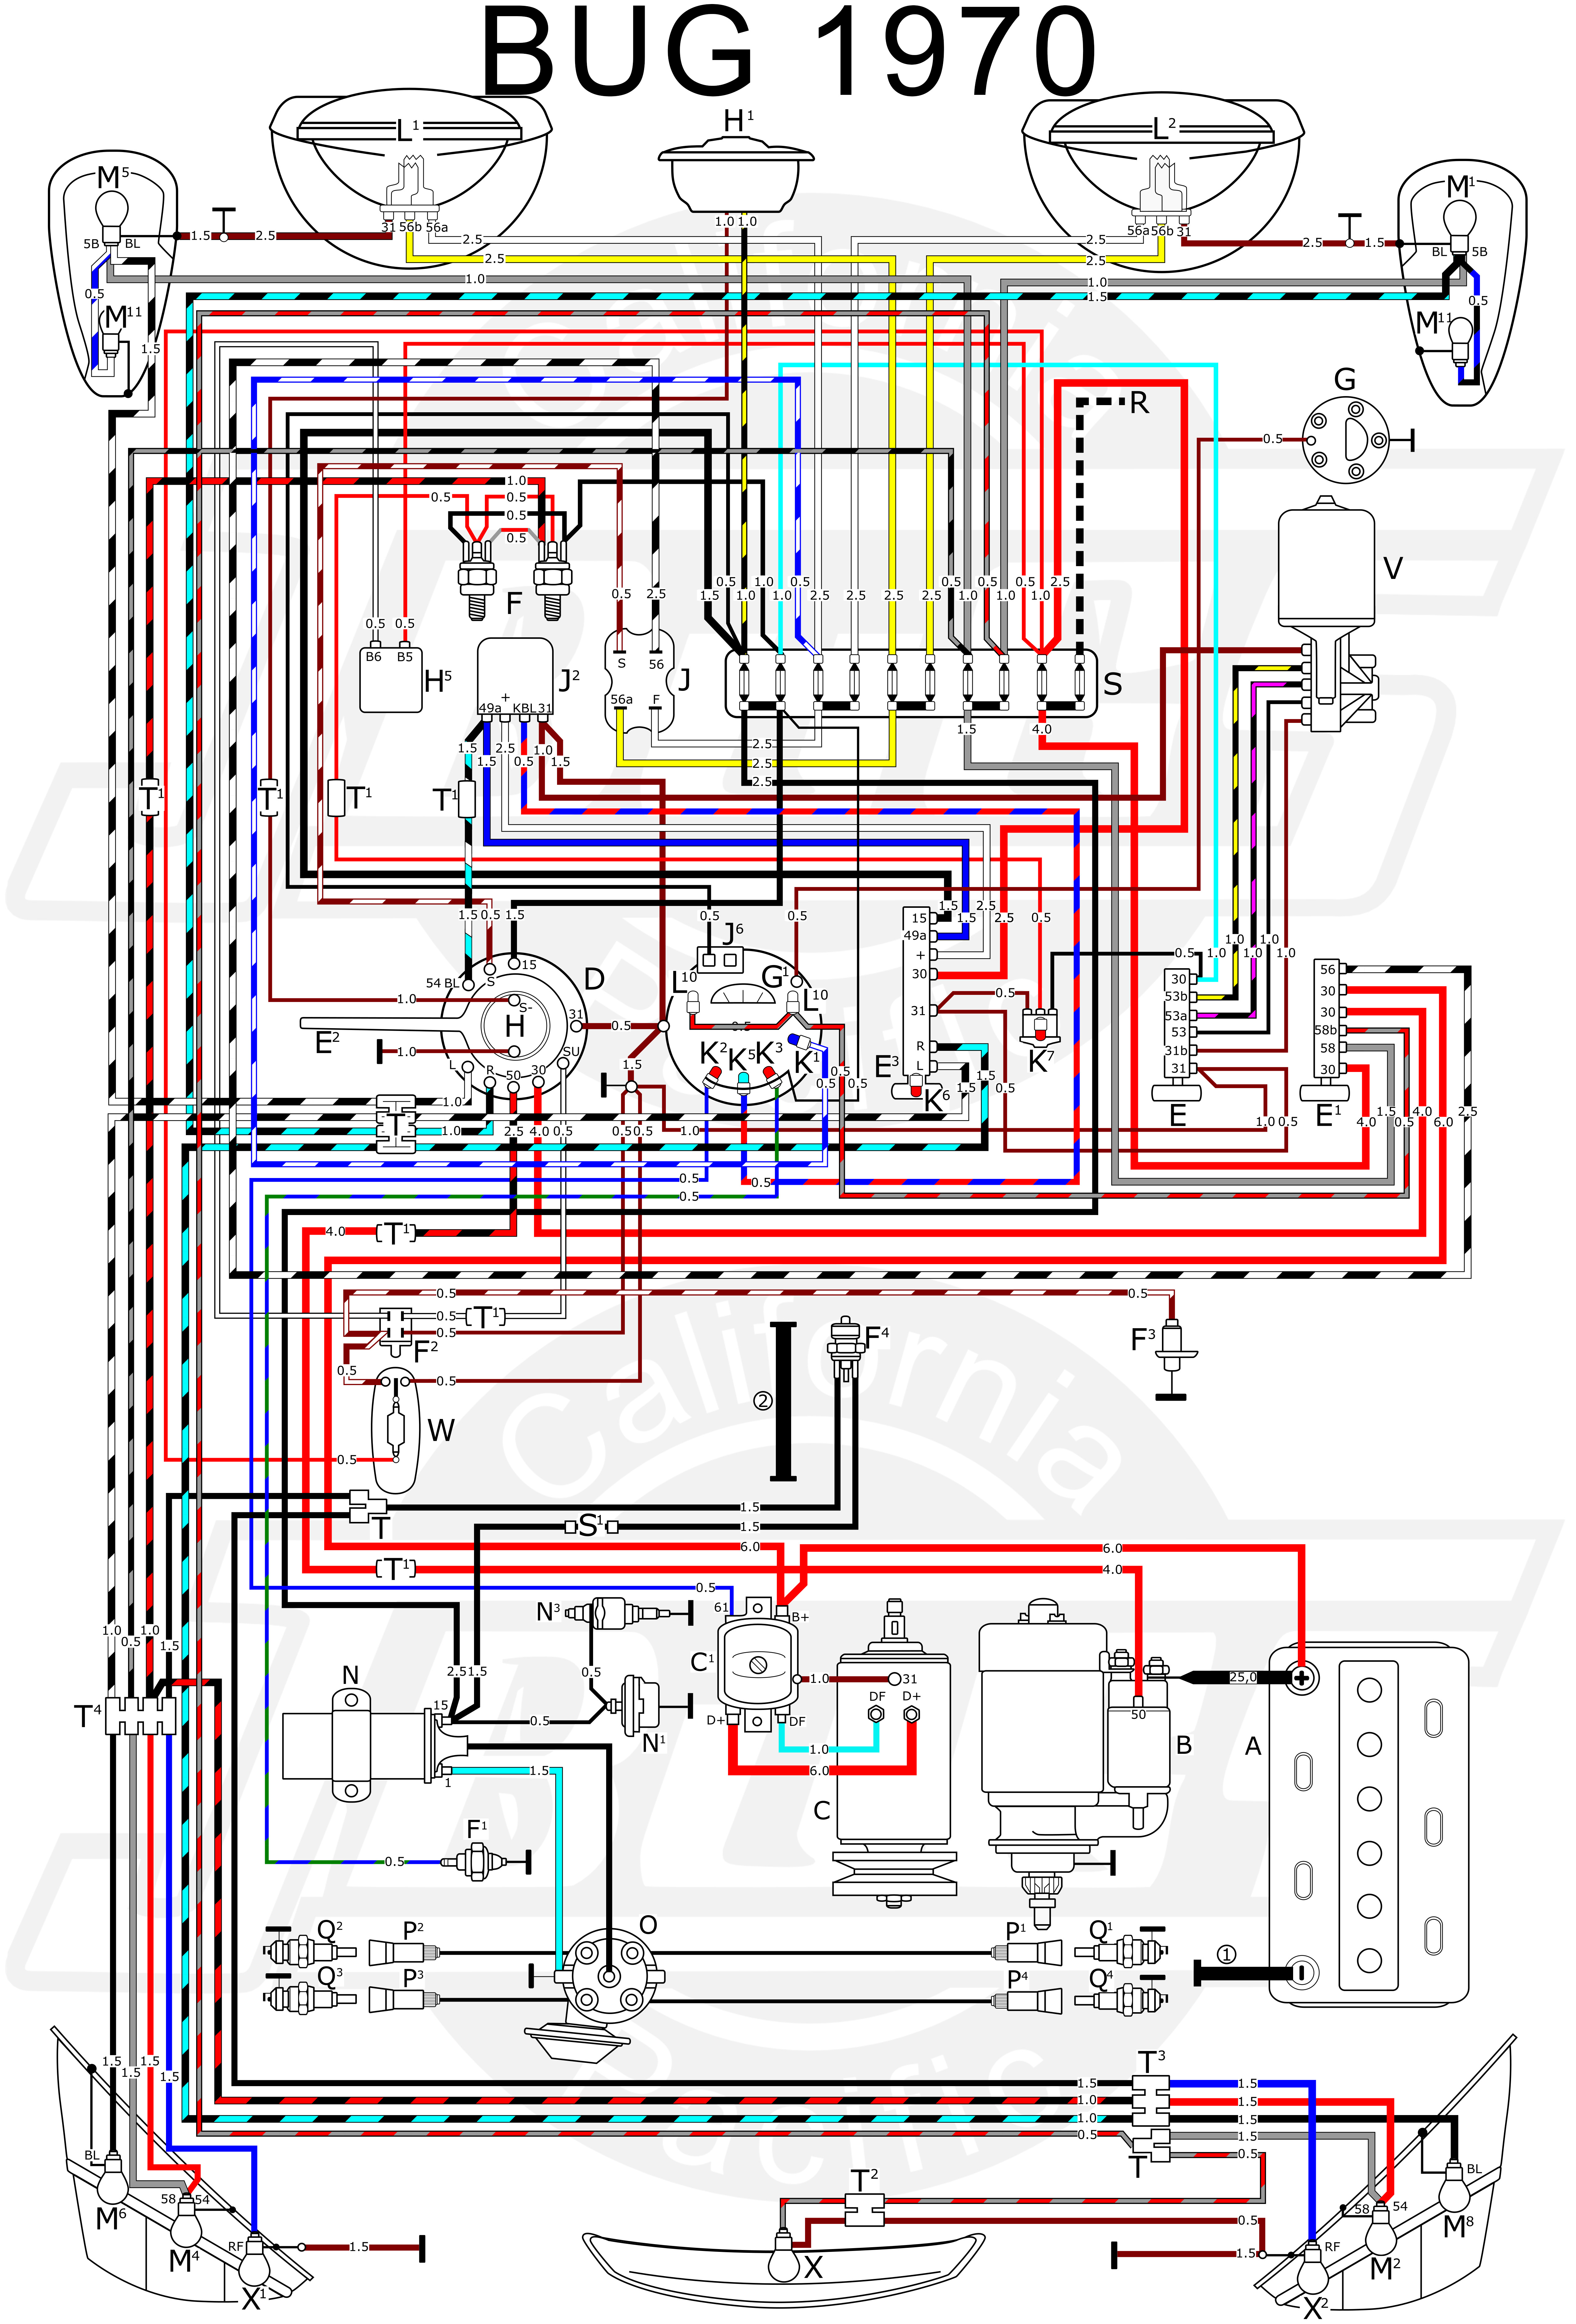 VW Bug 1970 Wiring Diagram vw tech article 1970 wiring diagram VW Bus Ignition Coil at cos-gaming.co